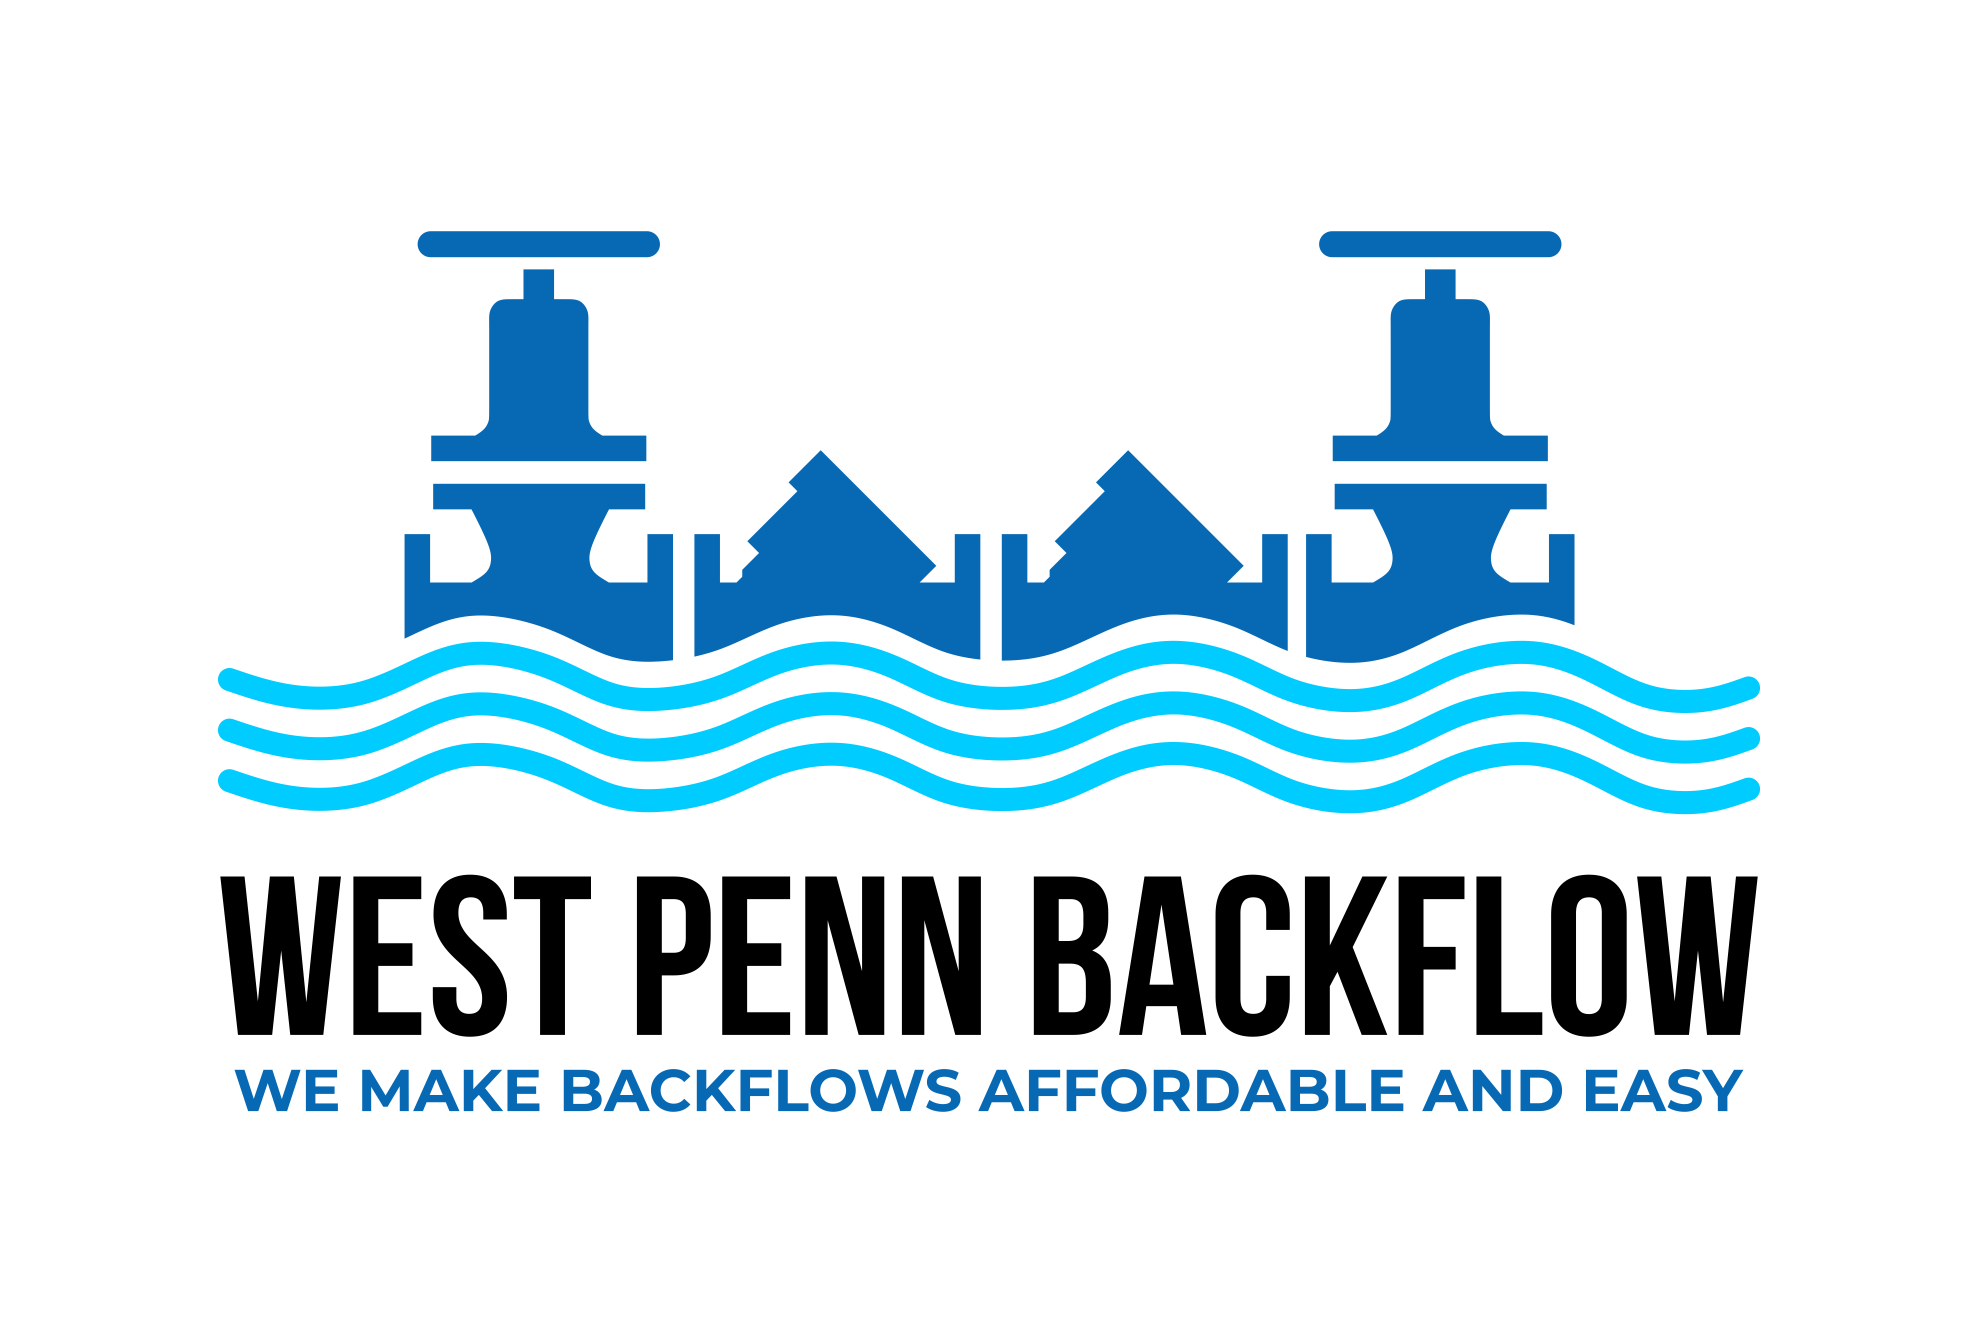 Backflow services, backflow repair